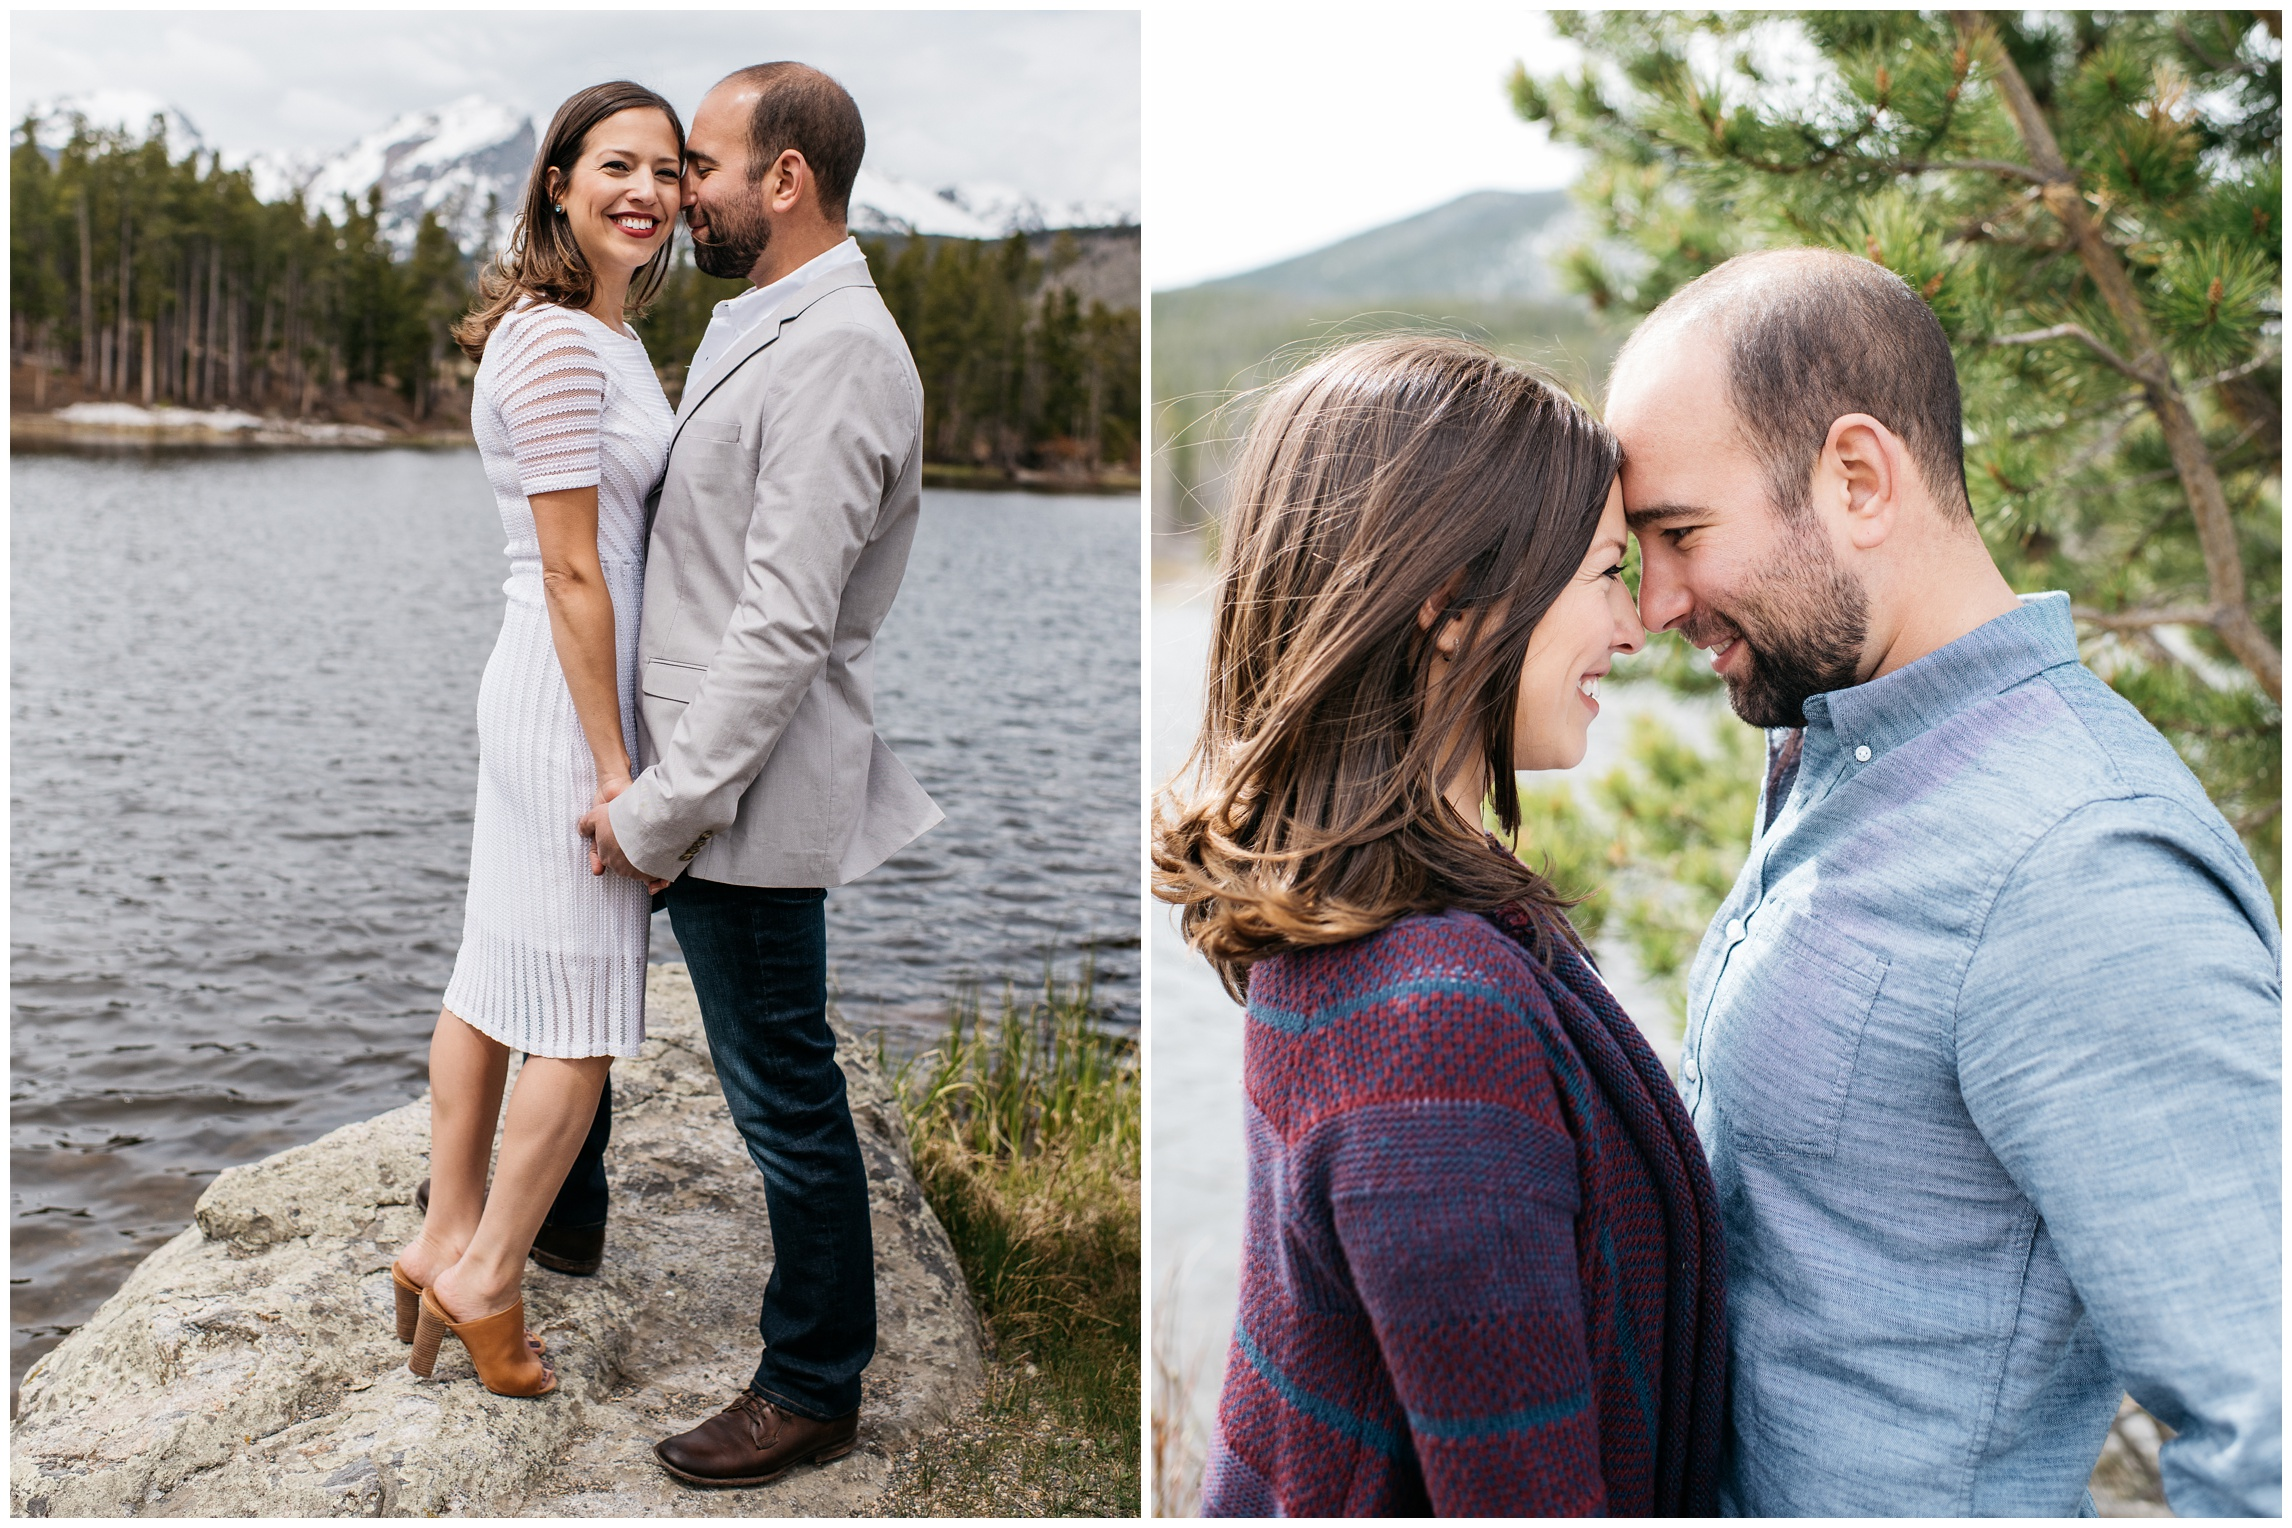 A young loving couple embraces at Sprague Lake in Rocky Mountain National Park, Colorado. Engagement photography by Sonja Salzburg of Sonja K Photography.